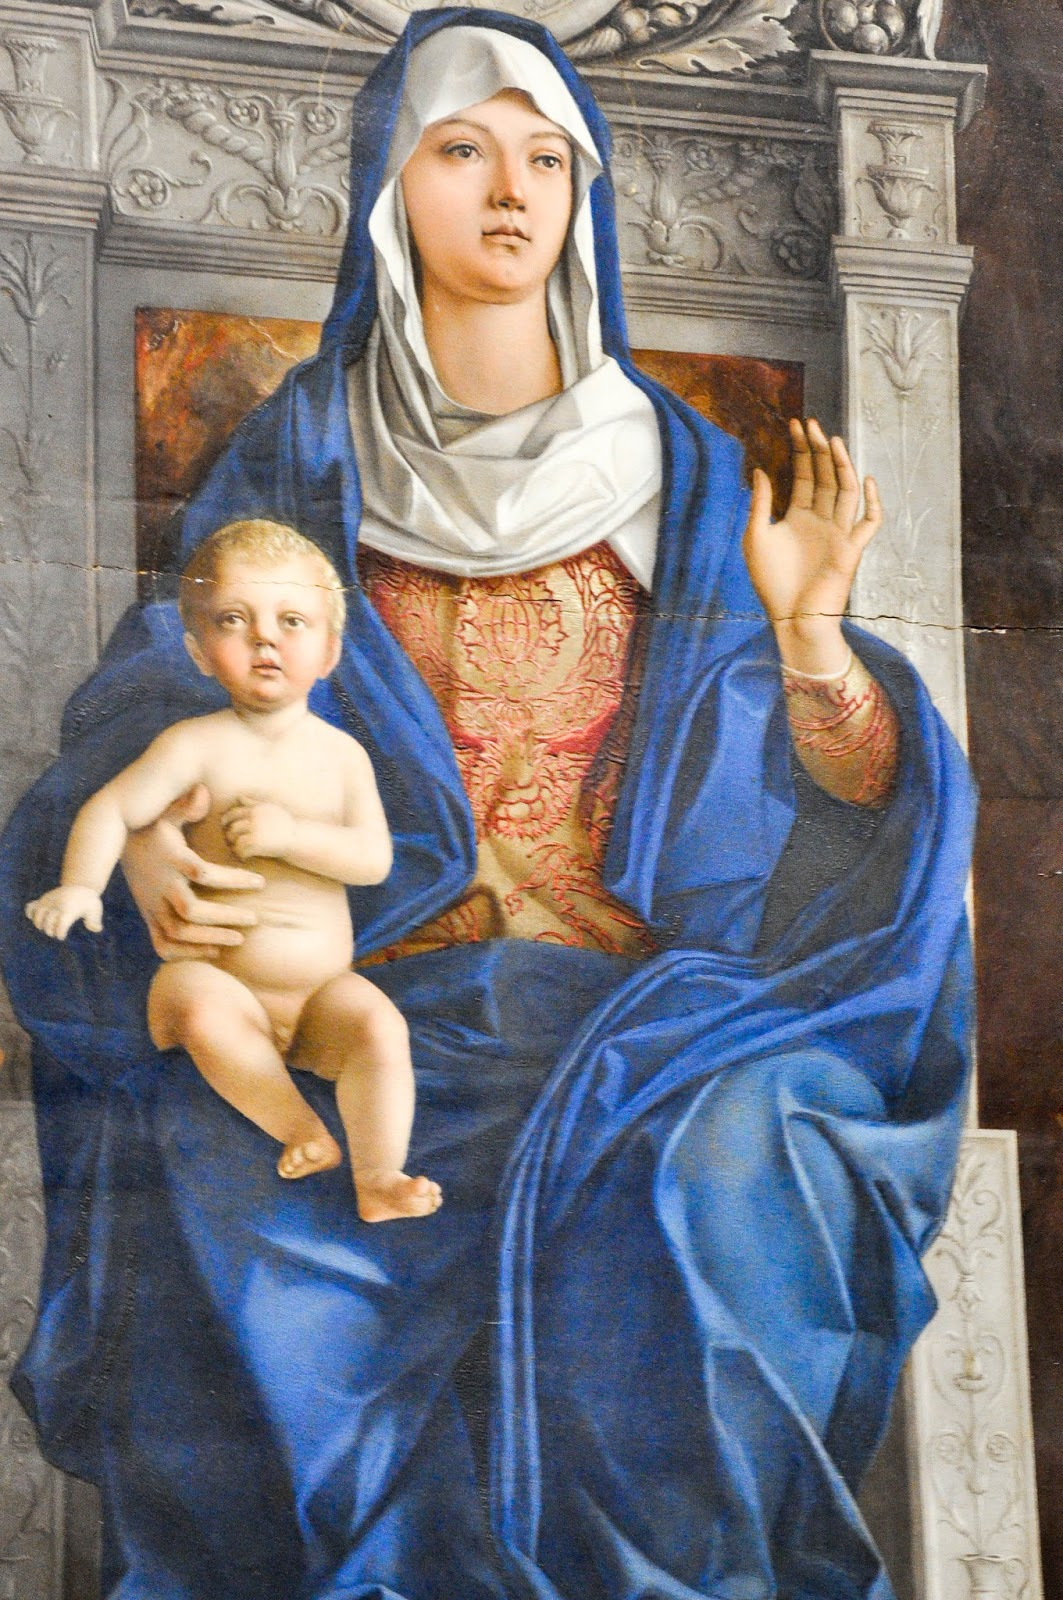 Madonna with child, close-up of a painting by Giovanni Bellini, Gallerie dell'Accademia in Venice